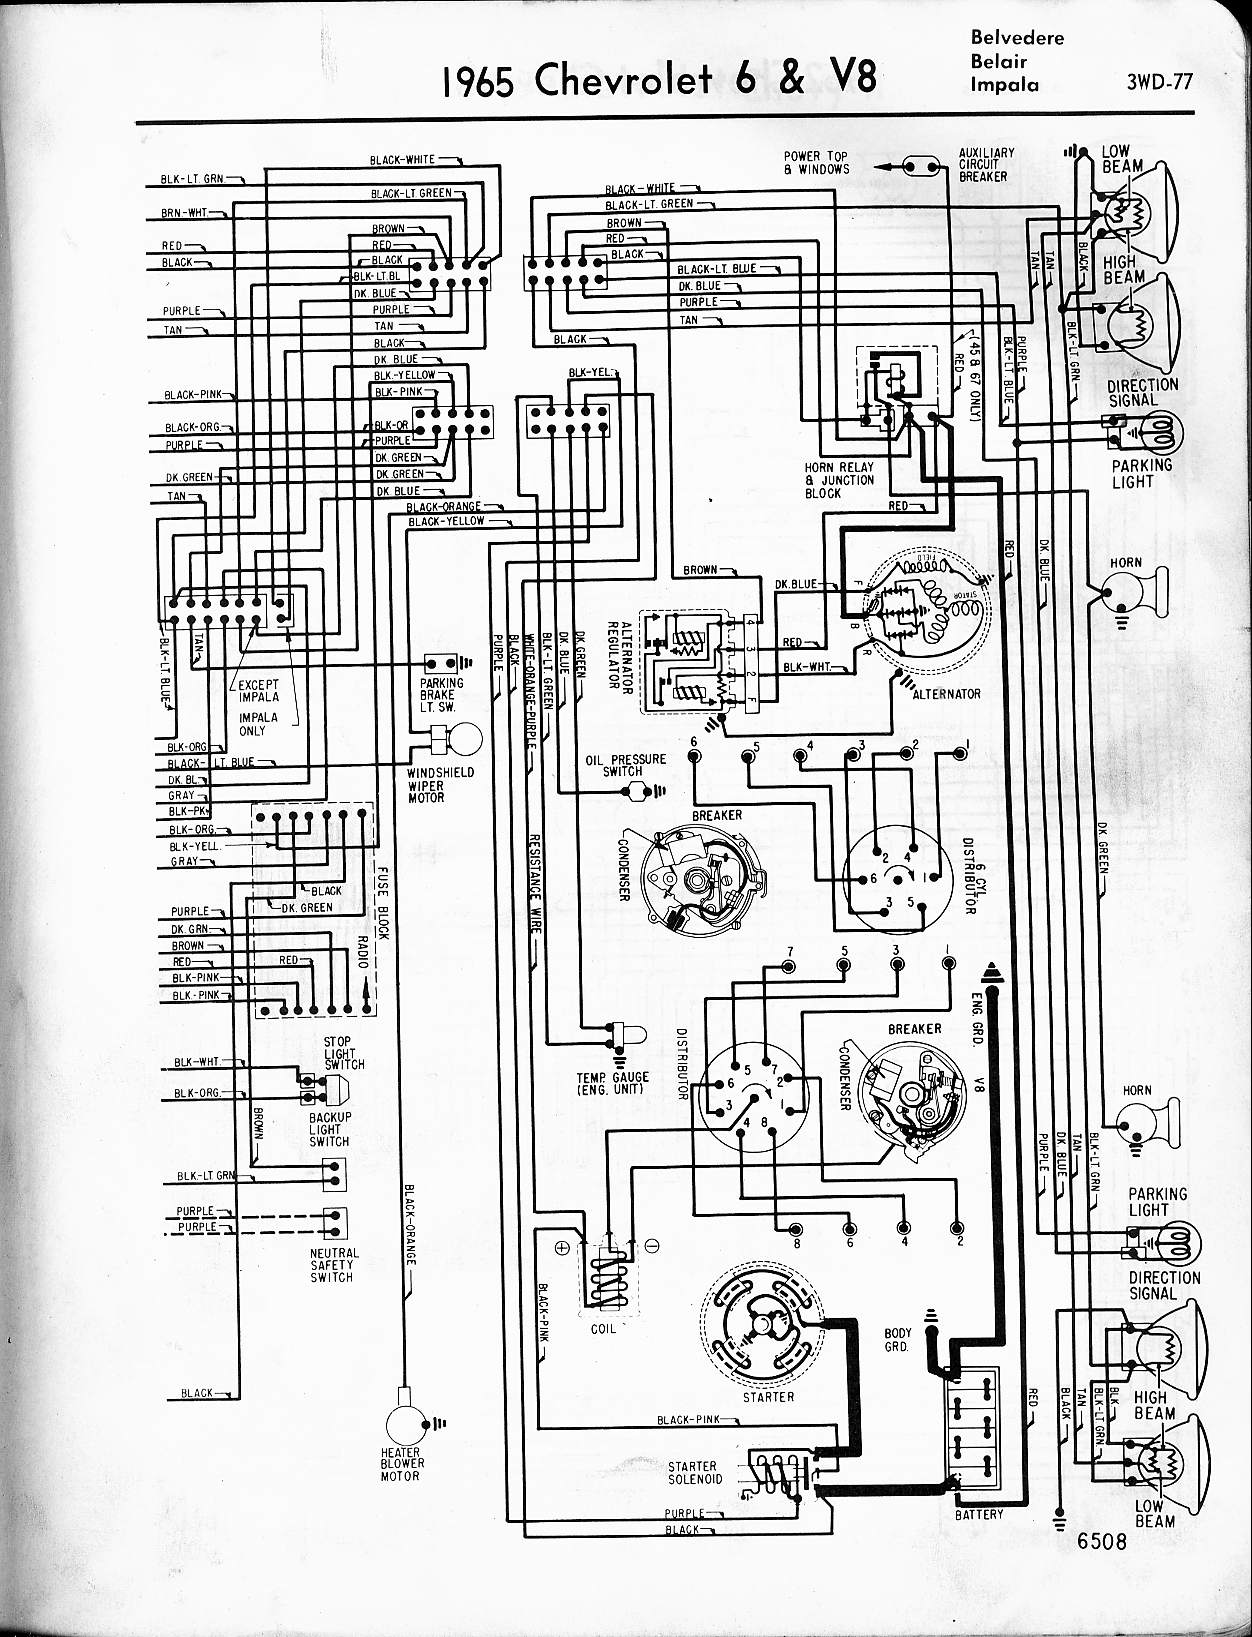 MWireChev65_3WD 077 1966 impala wiring harness 1961 impala wiring harness \u2022 free 1966 chevelle wiring diagram at creativeand.co